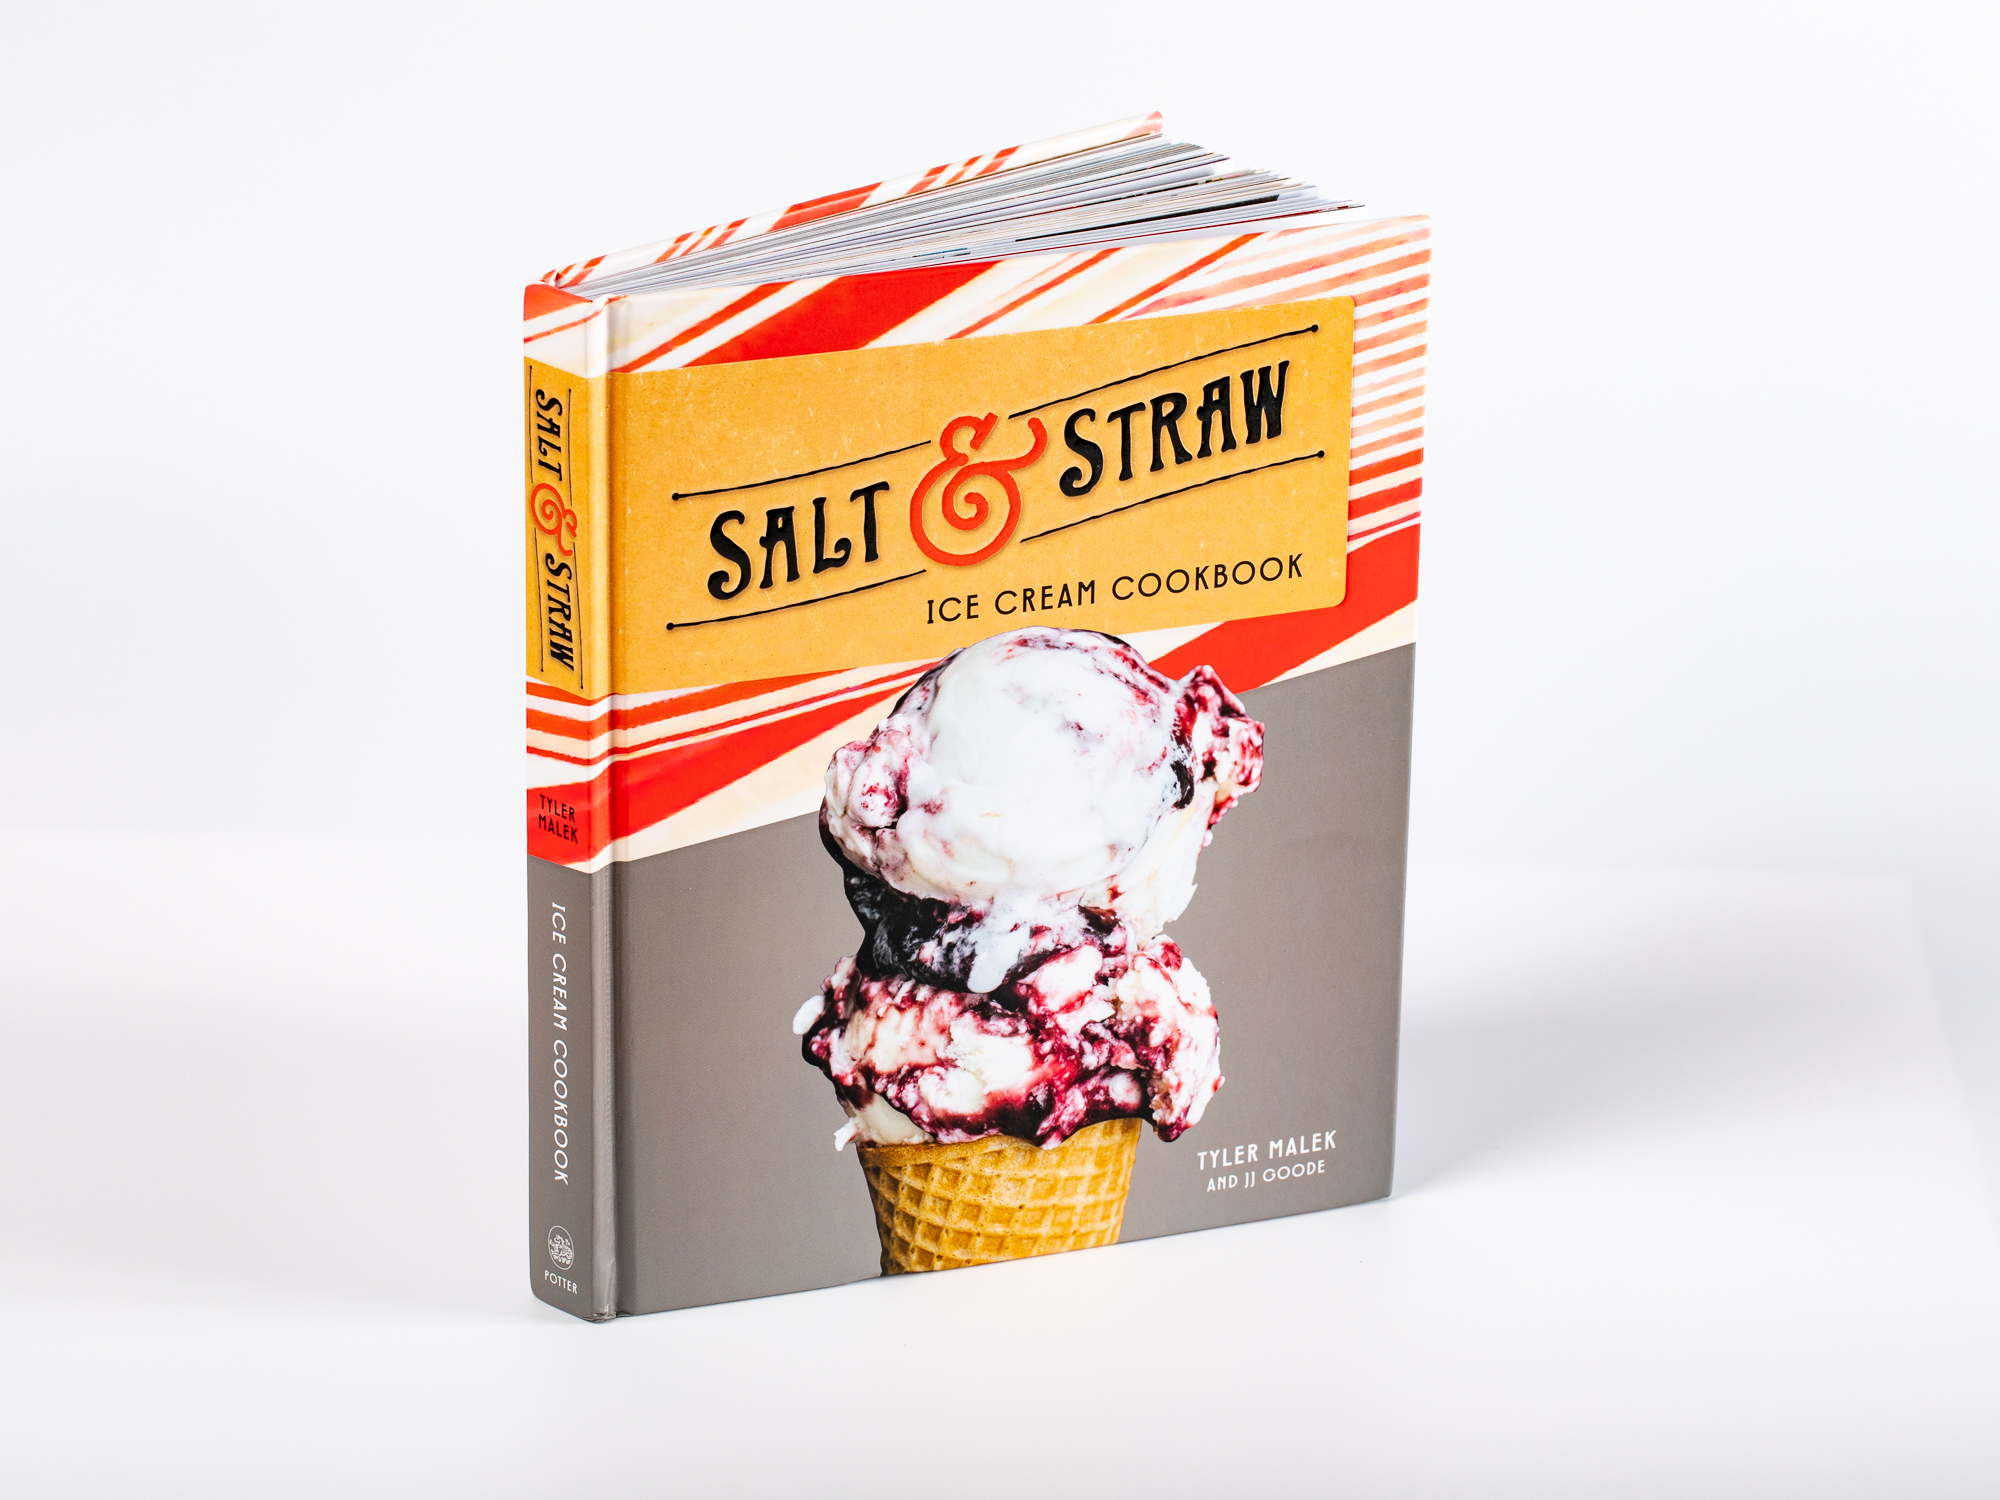 salt-straw-cookbook-1.jpg